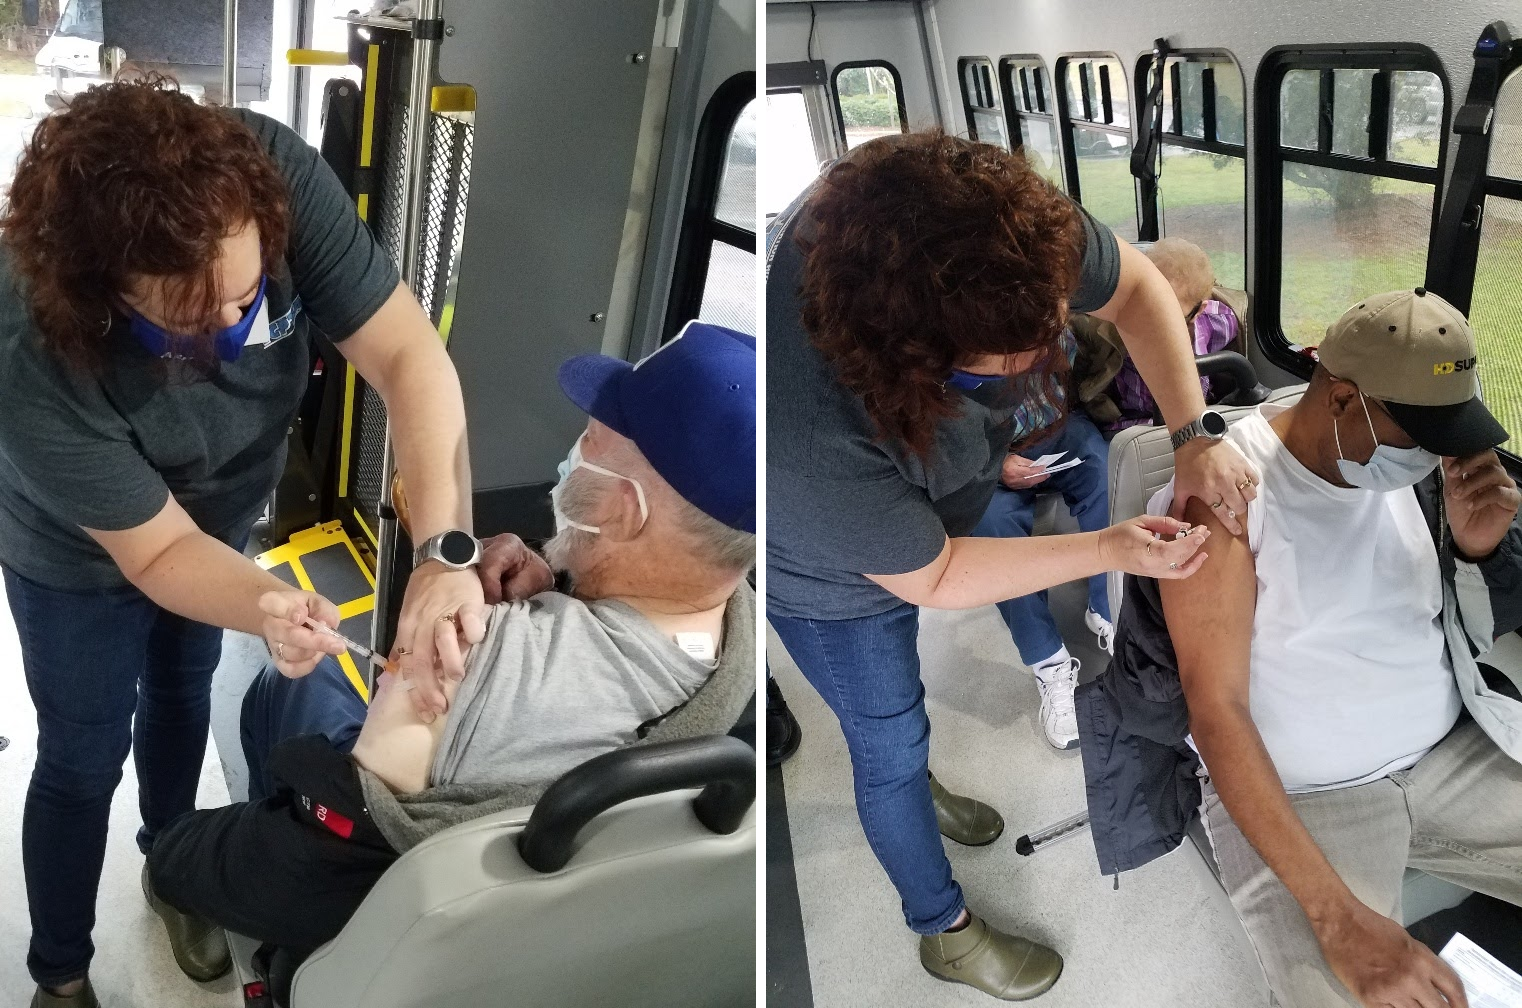 Customers of the Inter-County Public Transportation Authority (ICPTA), based in Elizabeth City, NC, receiving COVID-19 vaccine doses on ICPTA public transportation vehicles.